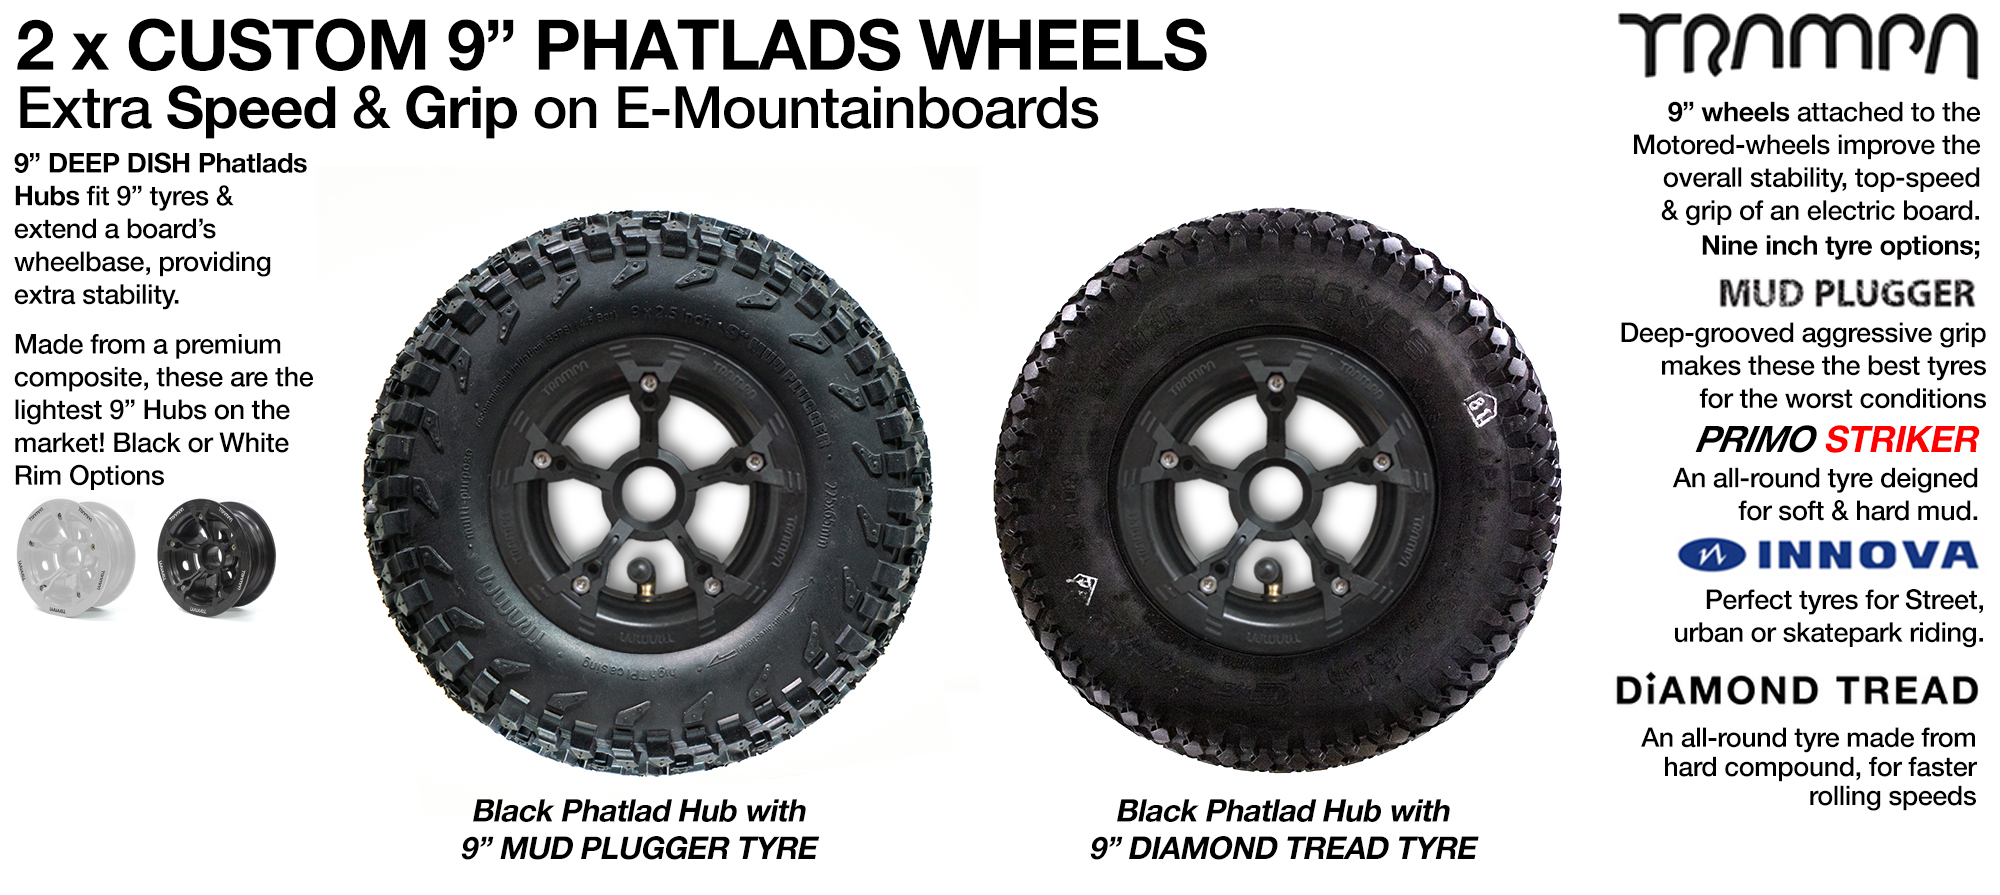 9 inch PHATLADS Wheel x2 Special offer for Complete Boards